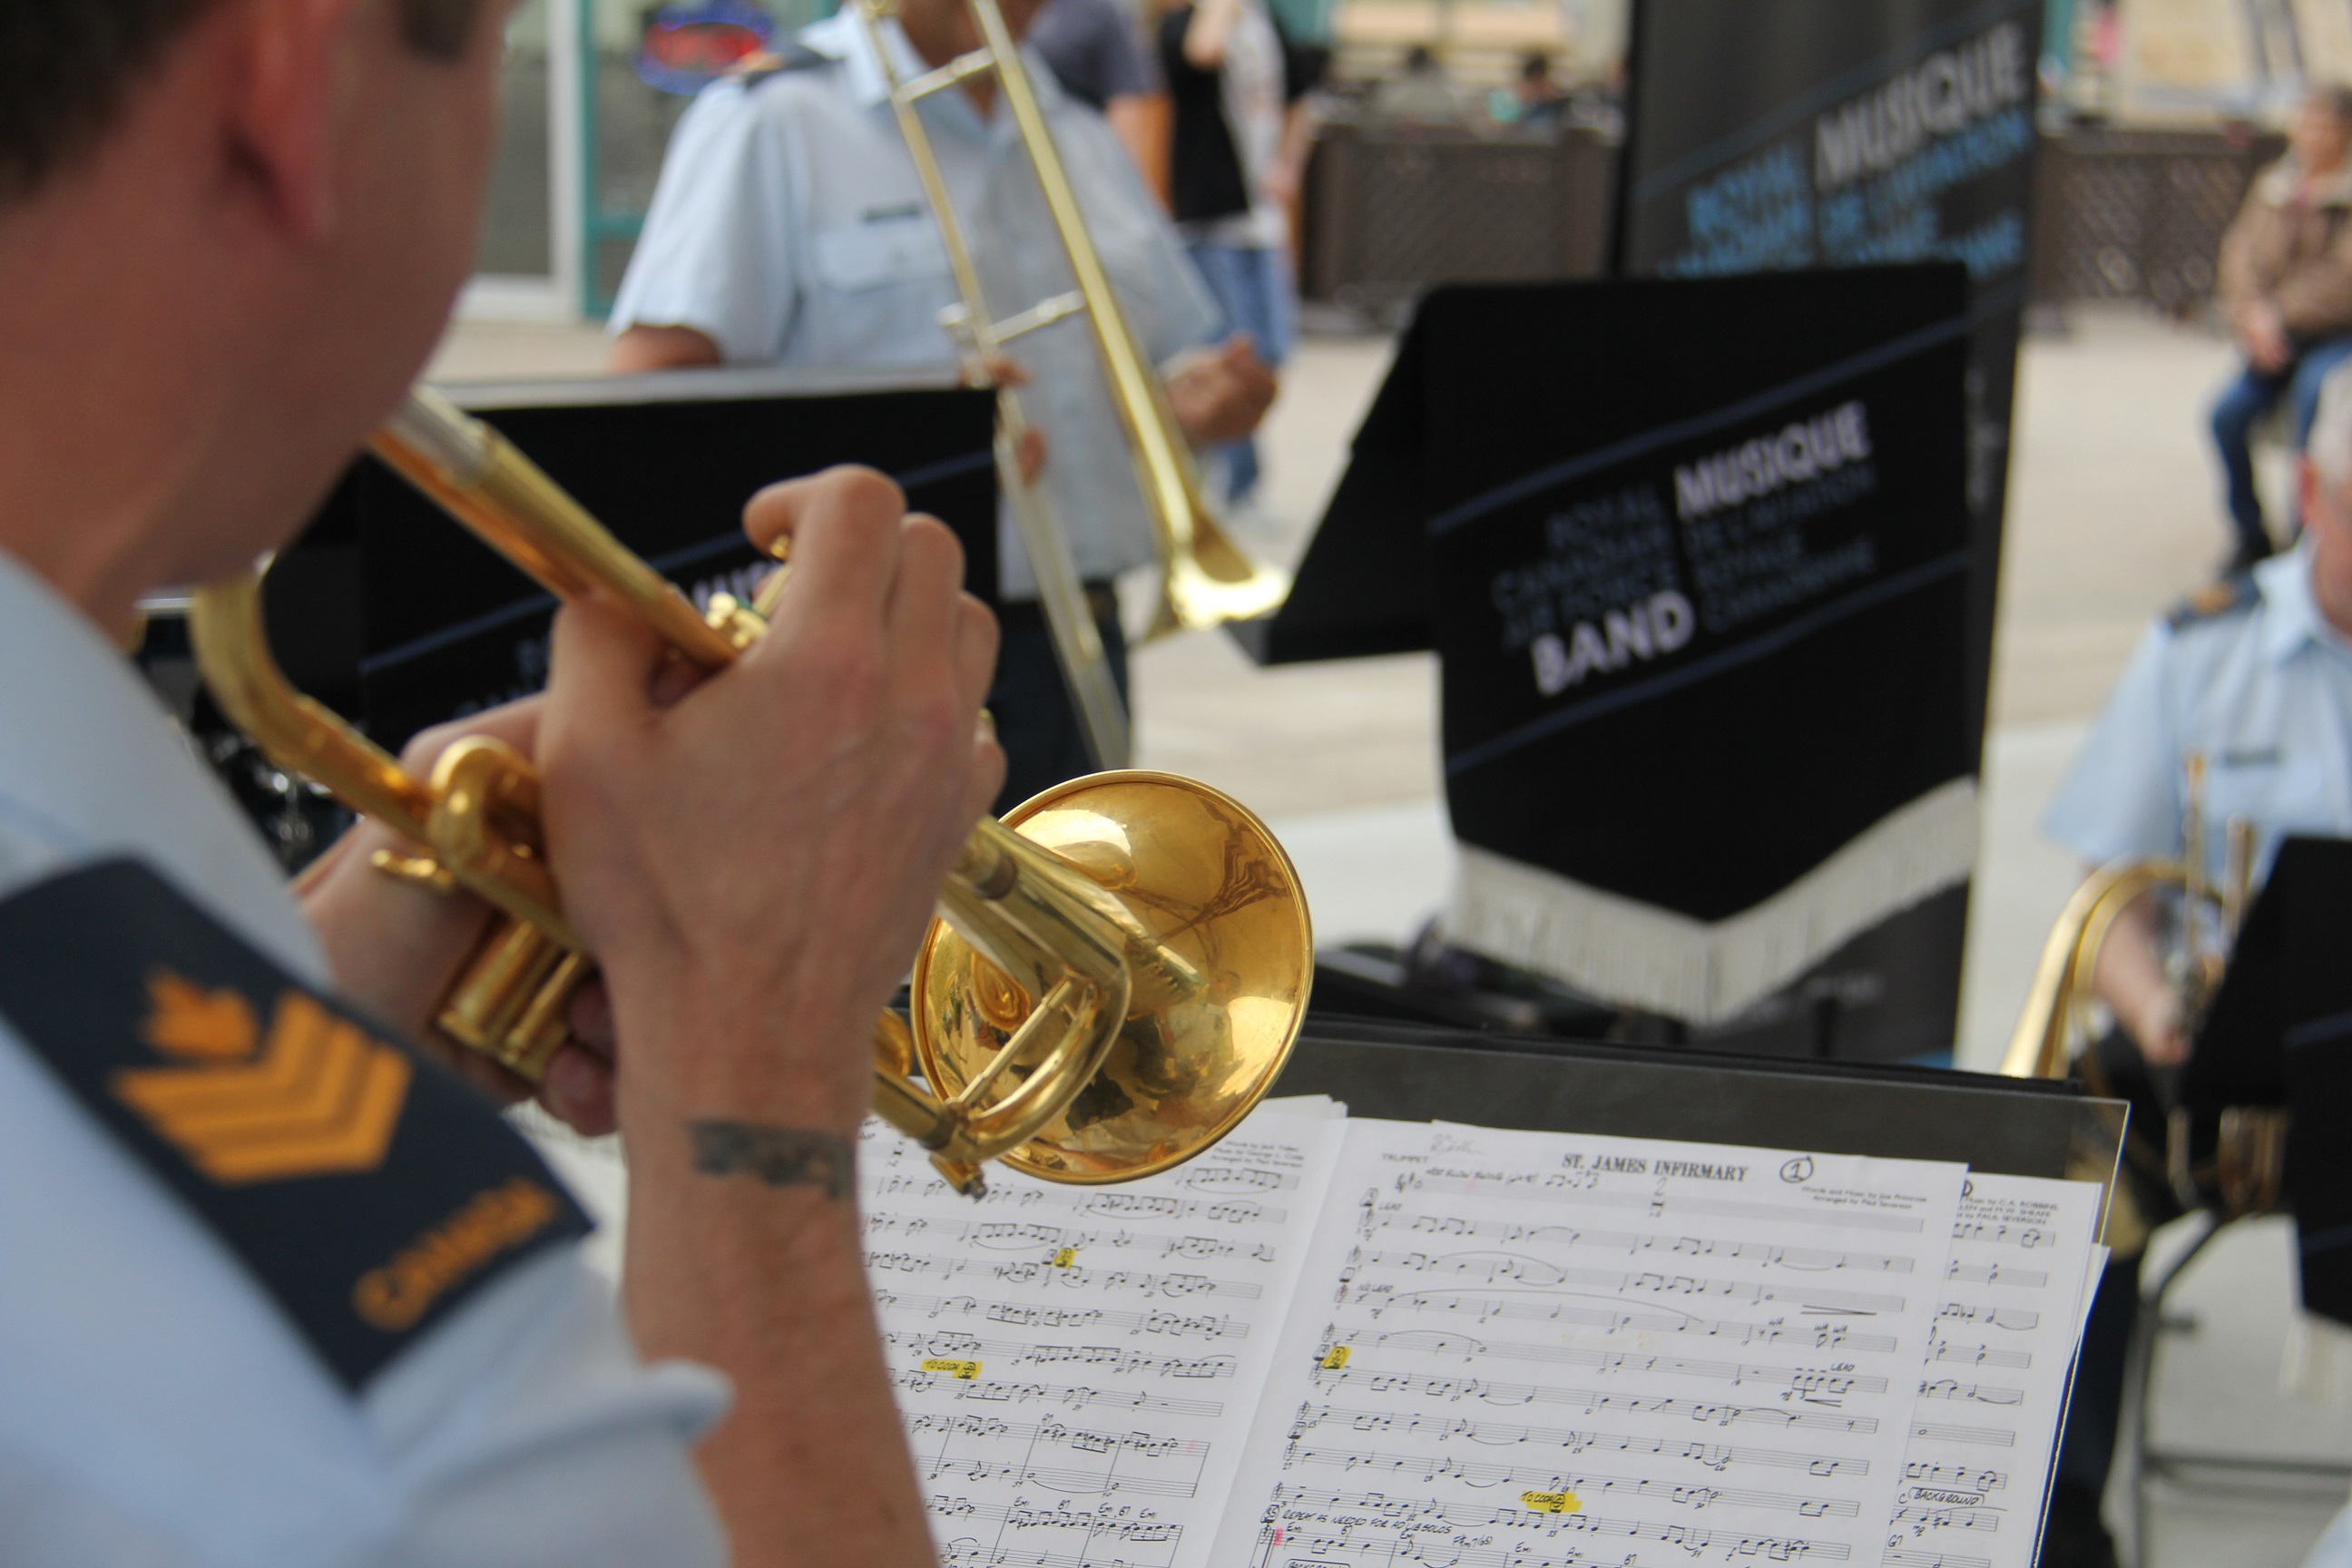 The Dixieland Band performs at the Forks for an RCAF Run promotional event.